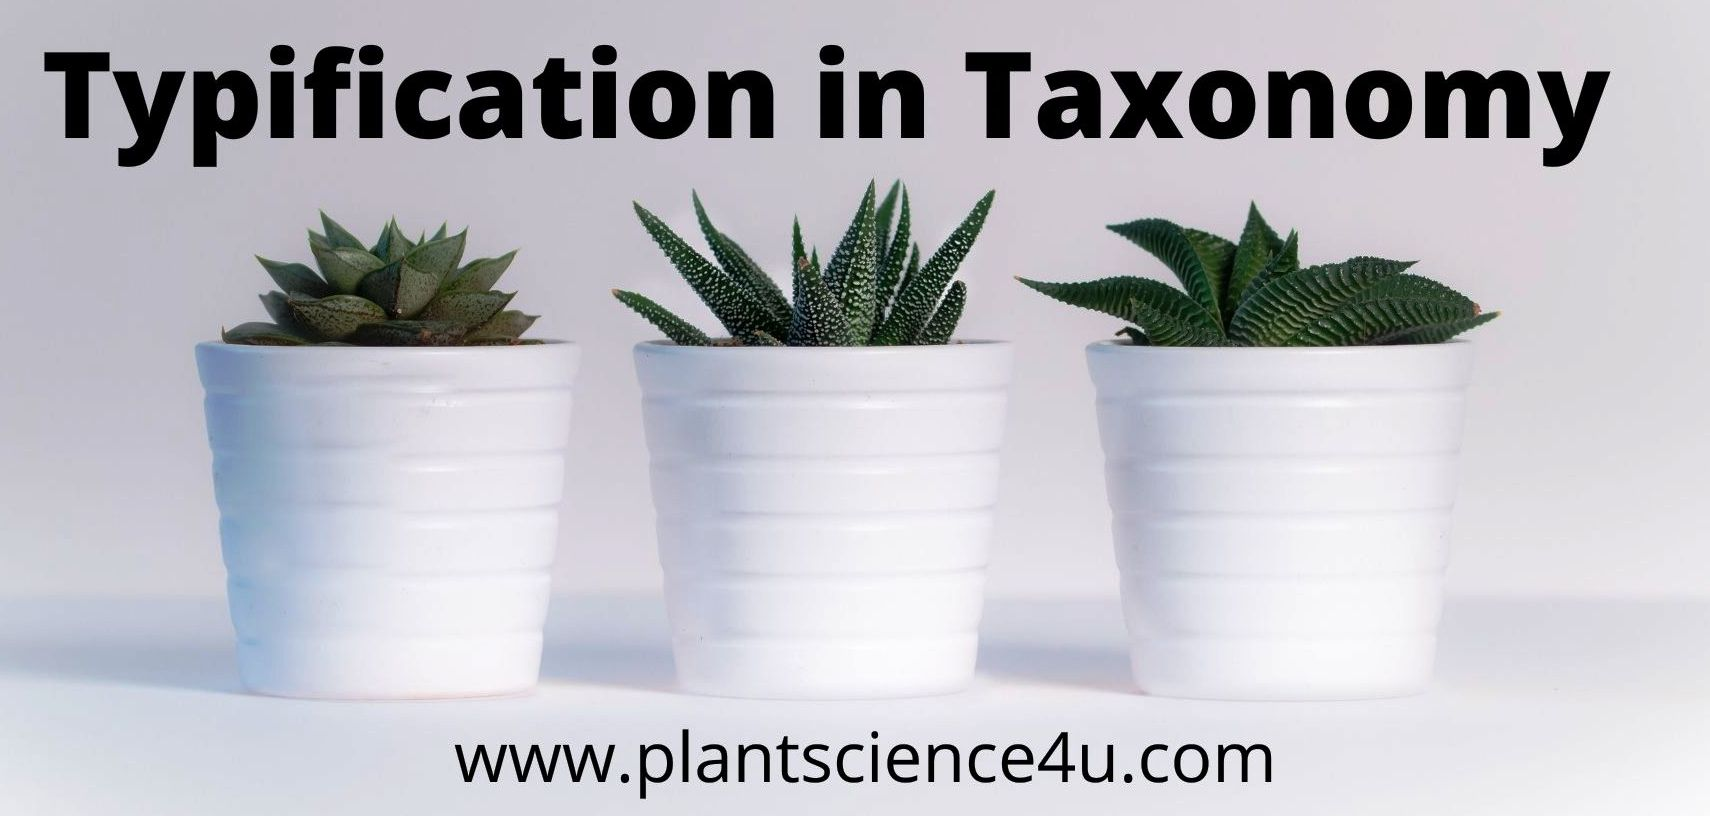 Typification in Taxonomy